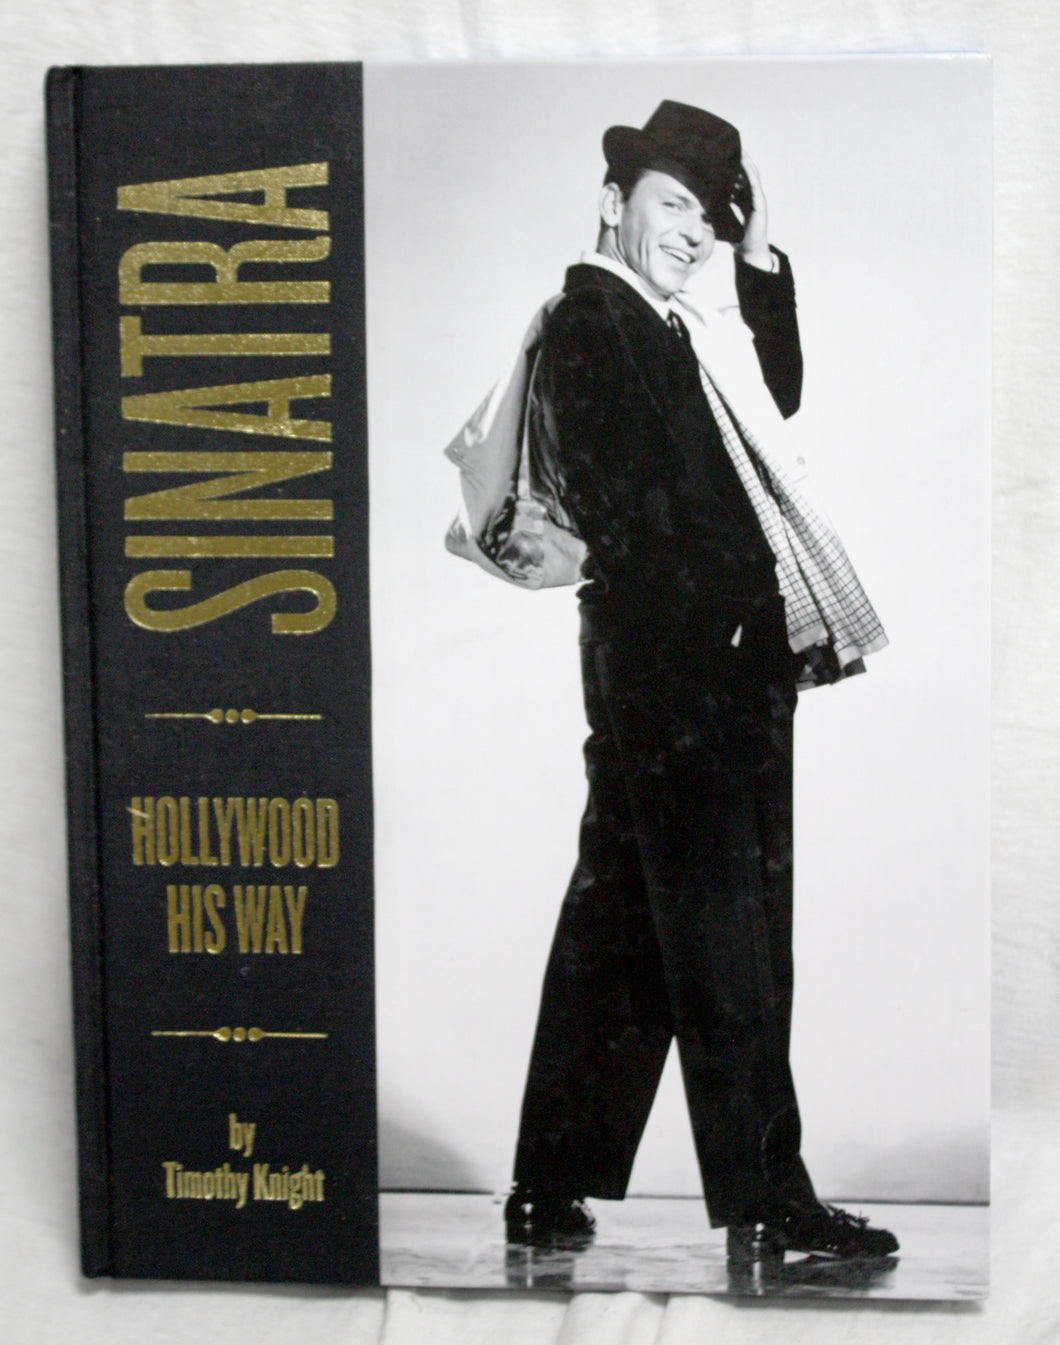 Sinatra Hollywood his Way by Timothy Knight Hardback Coffee Table Book 12